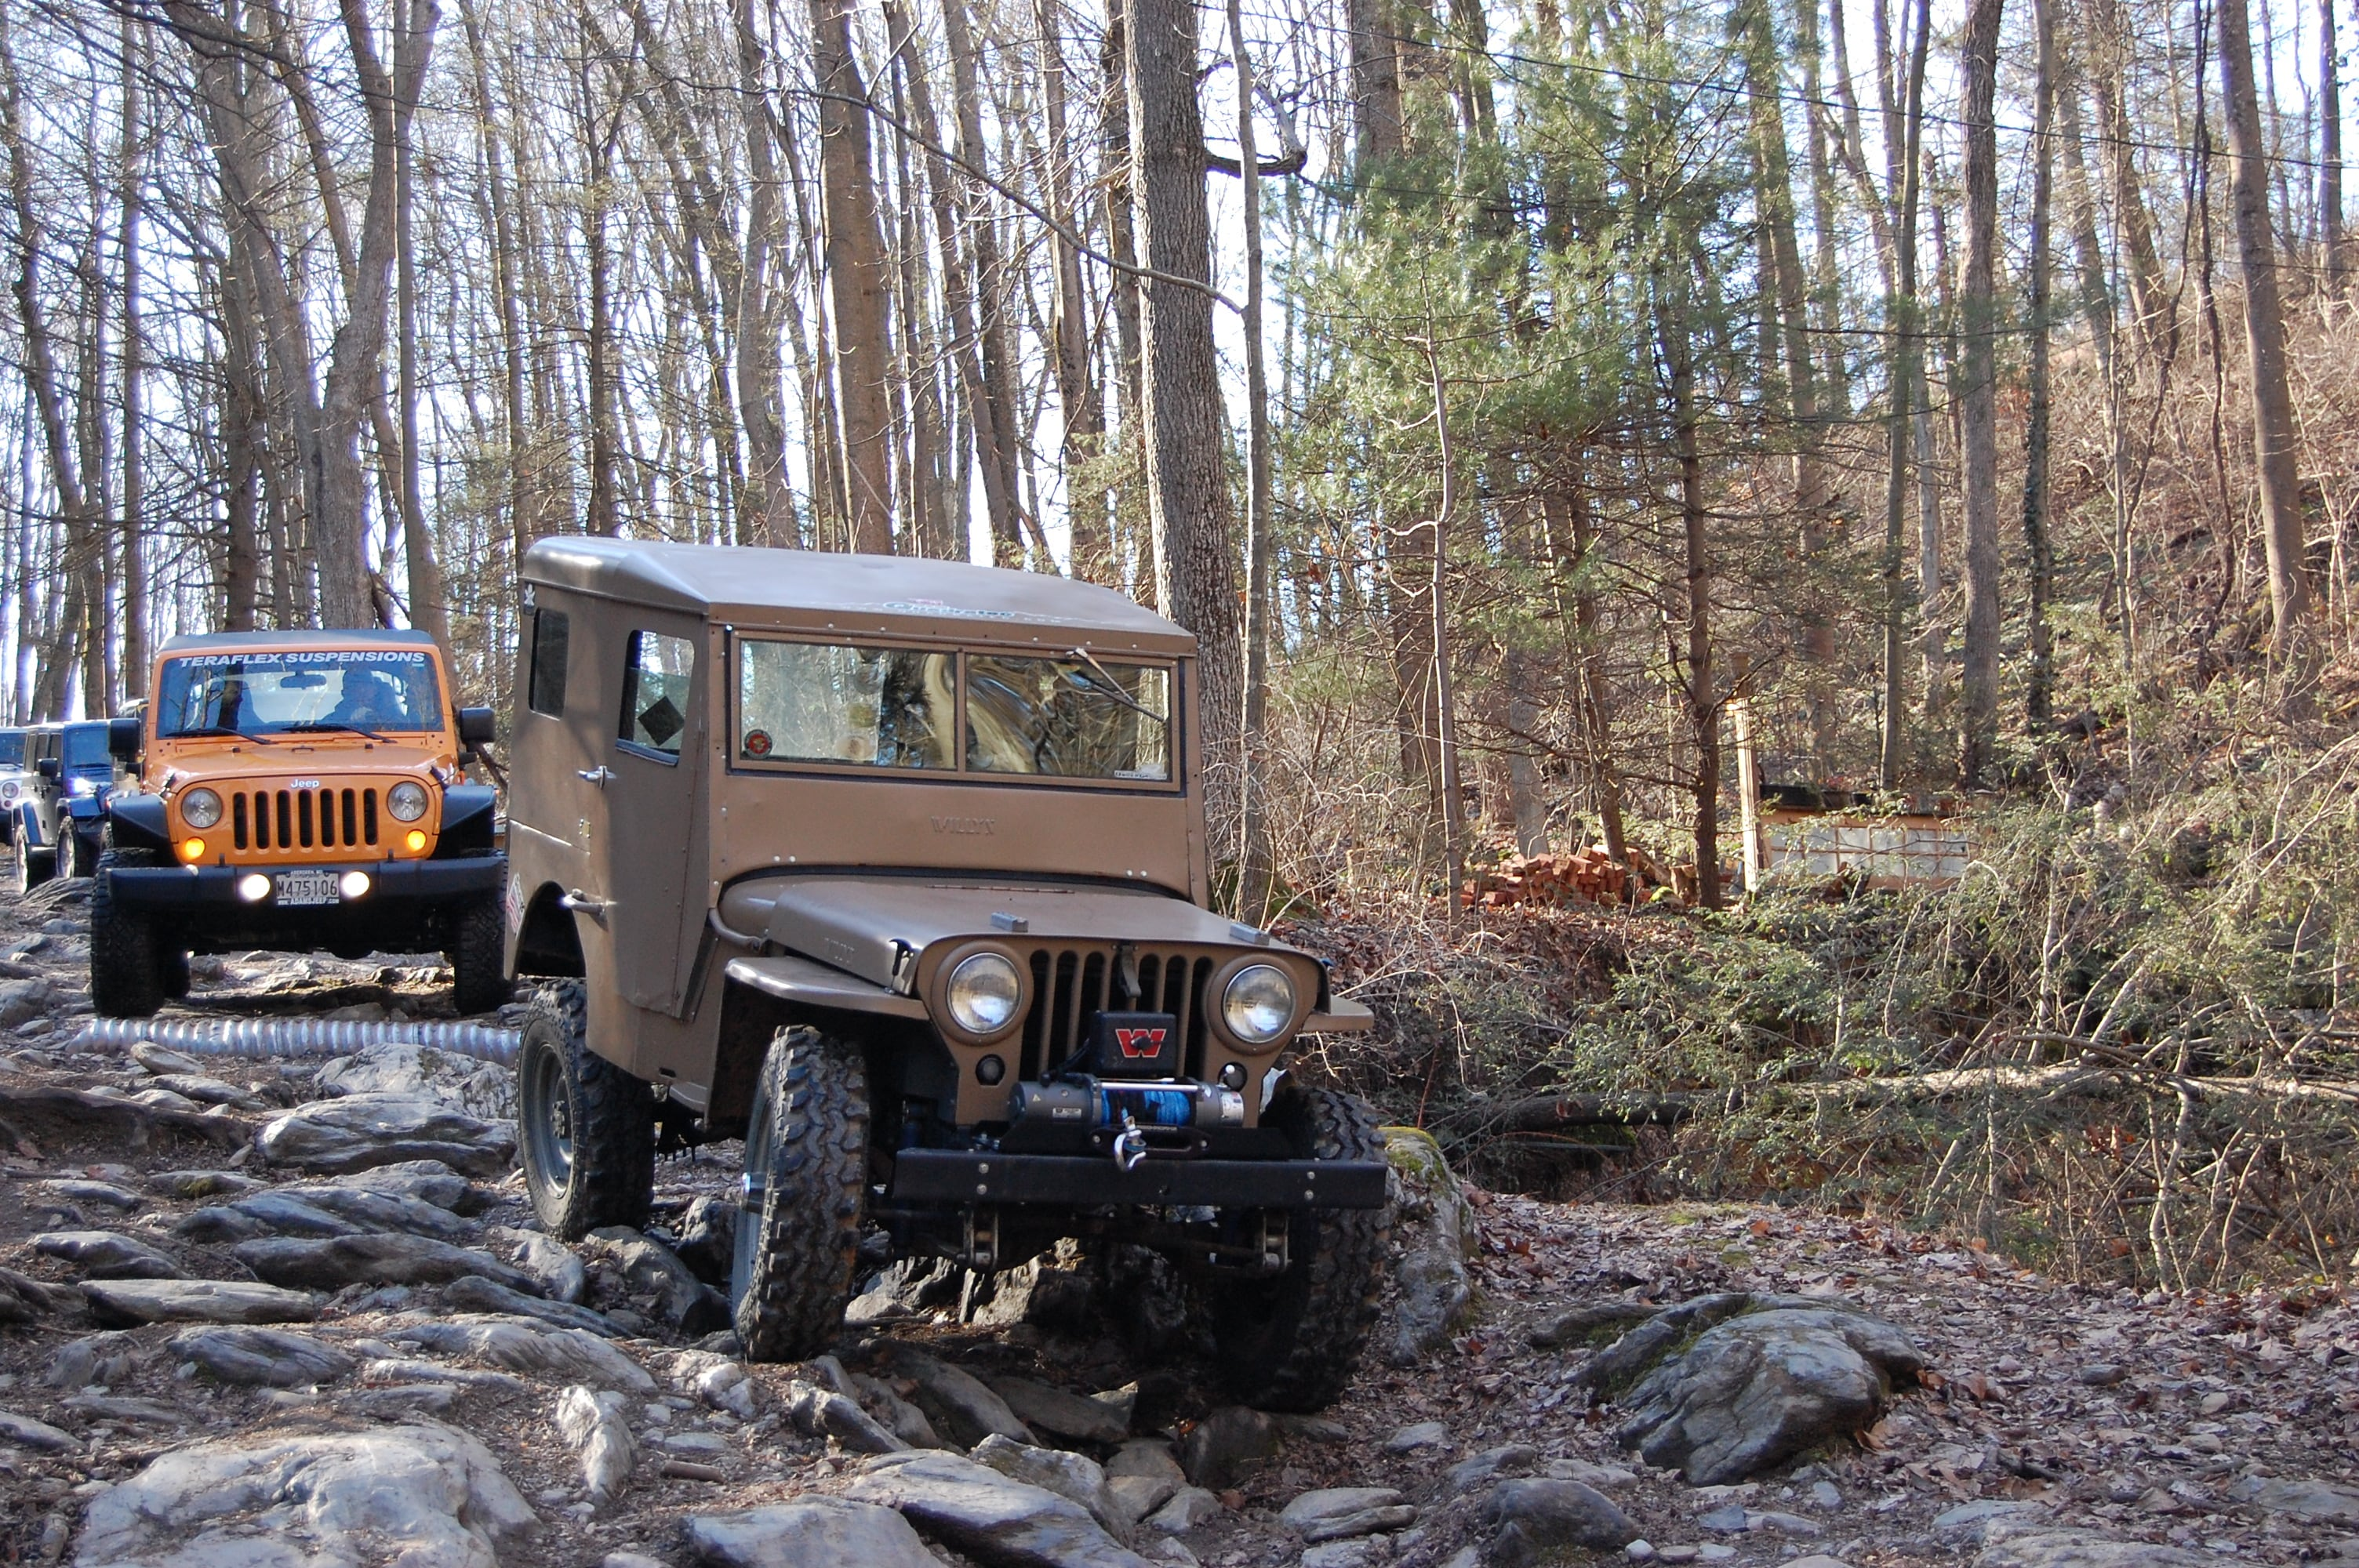 Jeep Trails Adams Jeep Of Md Trip To Trails Road Adams Jeep Of Maryland